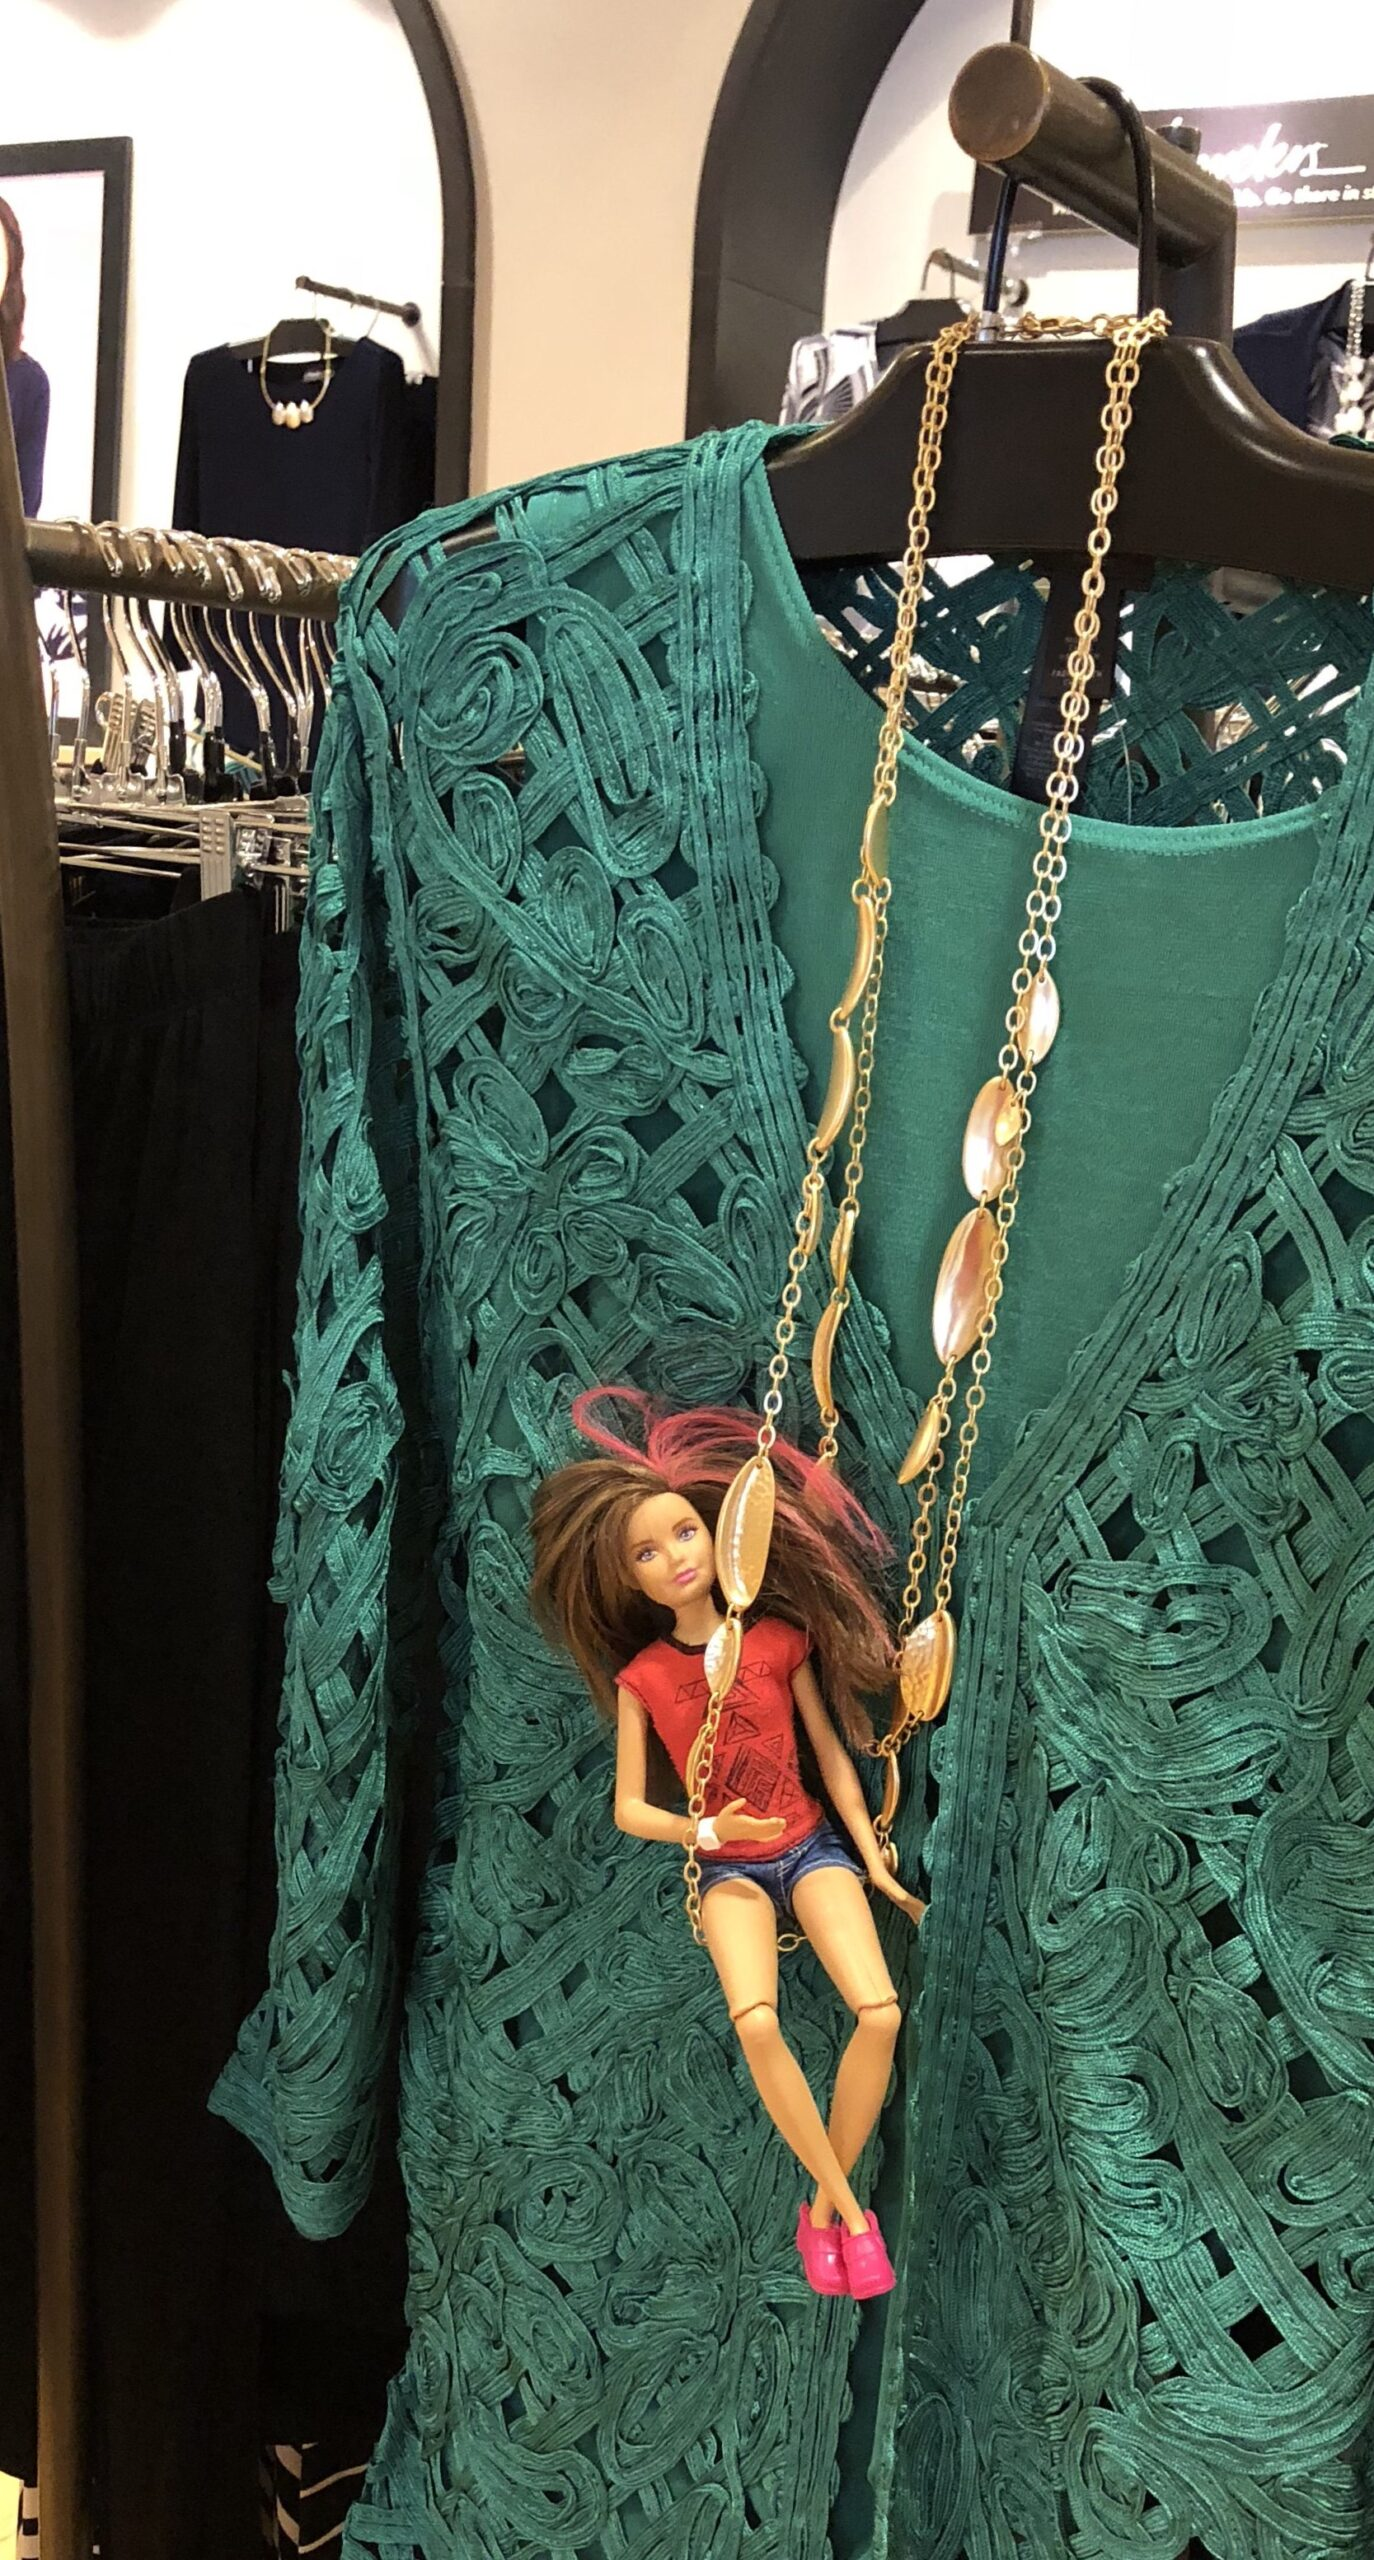 Skipper doll hanging on a necklace, for the Barbie Doll Story Shopping Fails.